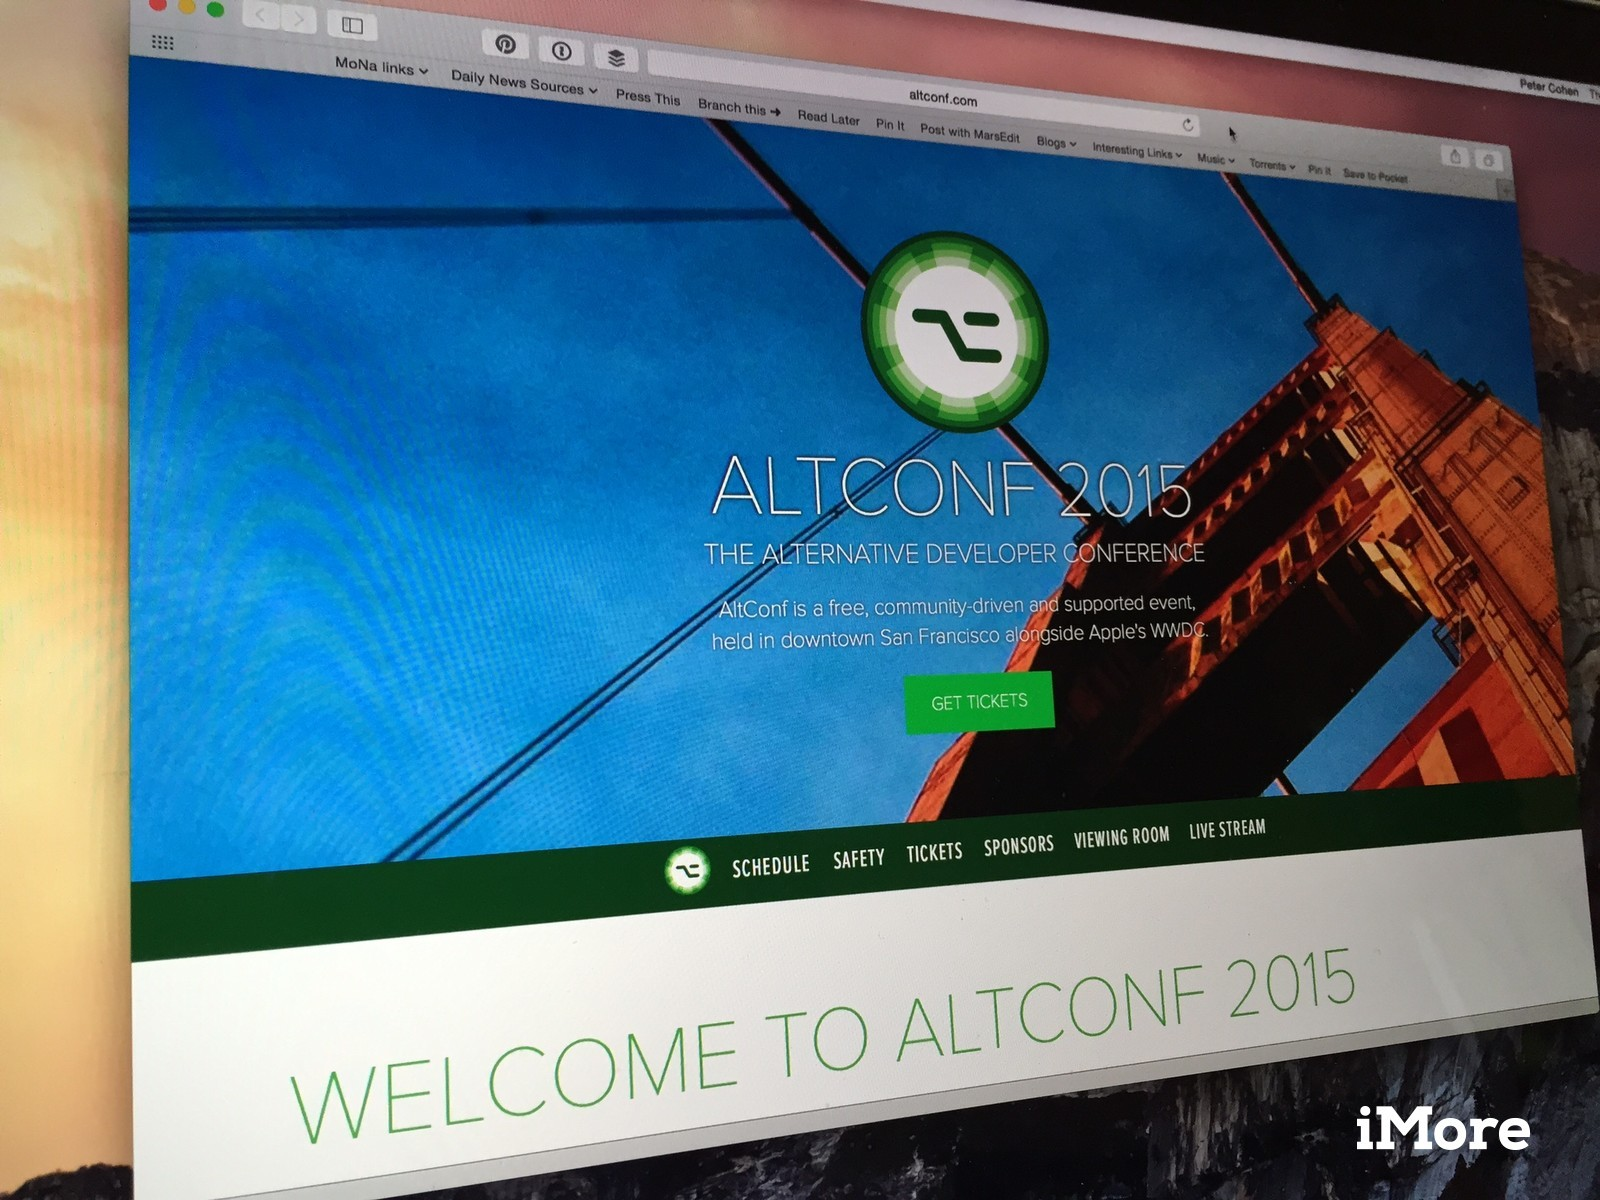 AltConf: The WWDC alternative continues to grow in leaps and bounds